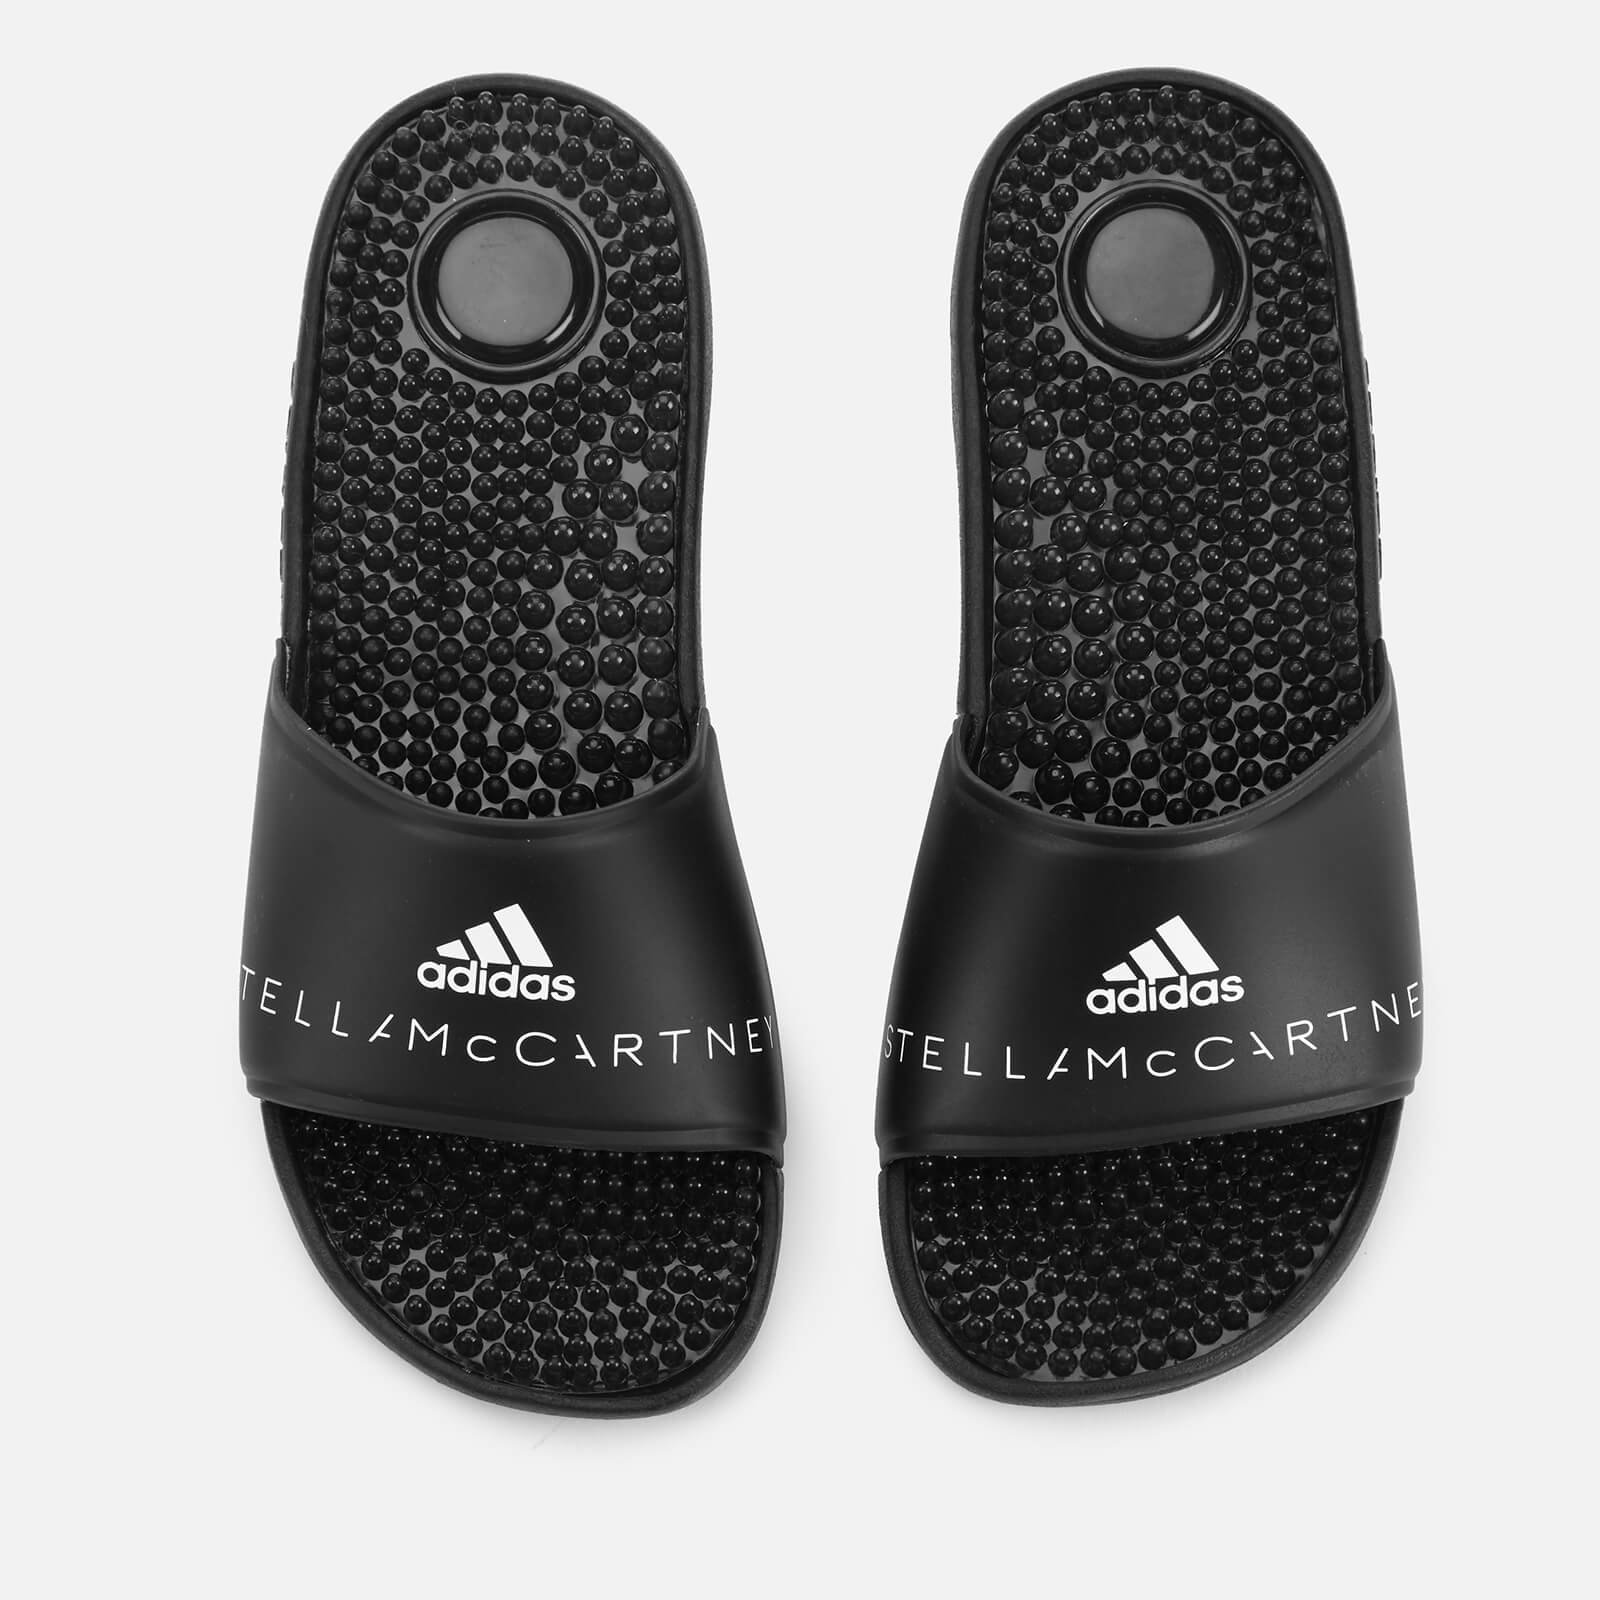 3d3035f0ba8d adidas by Stella McCartney Women s Adissage Slide Sandals - Core  Black White - Free UK Delivery over £50